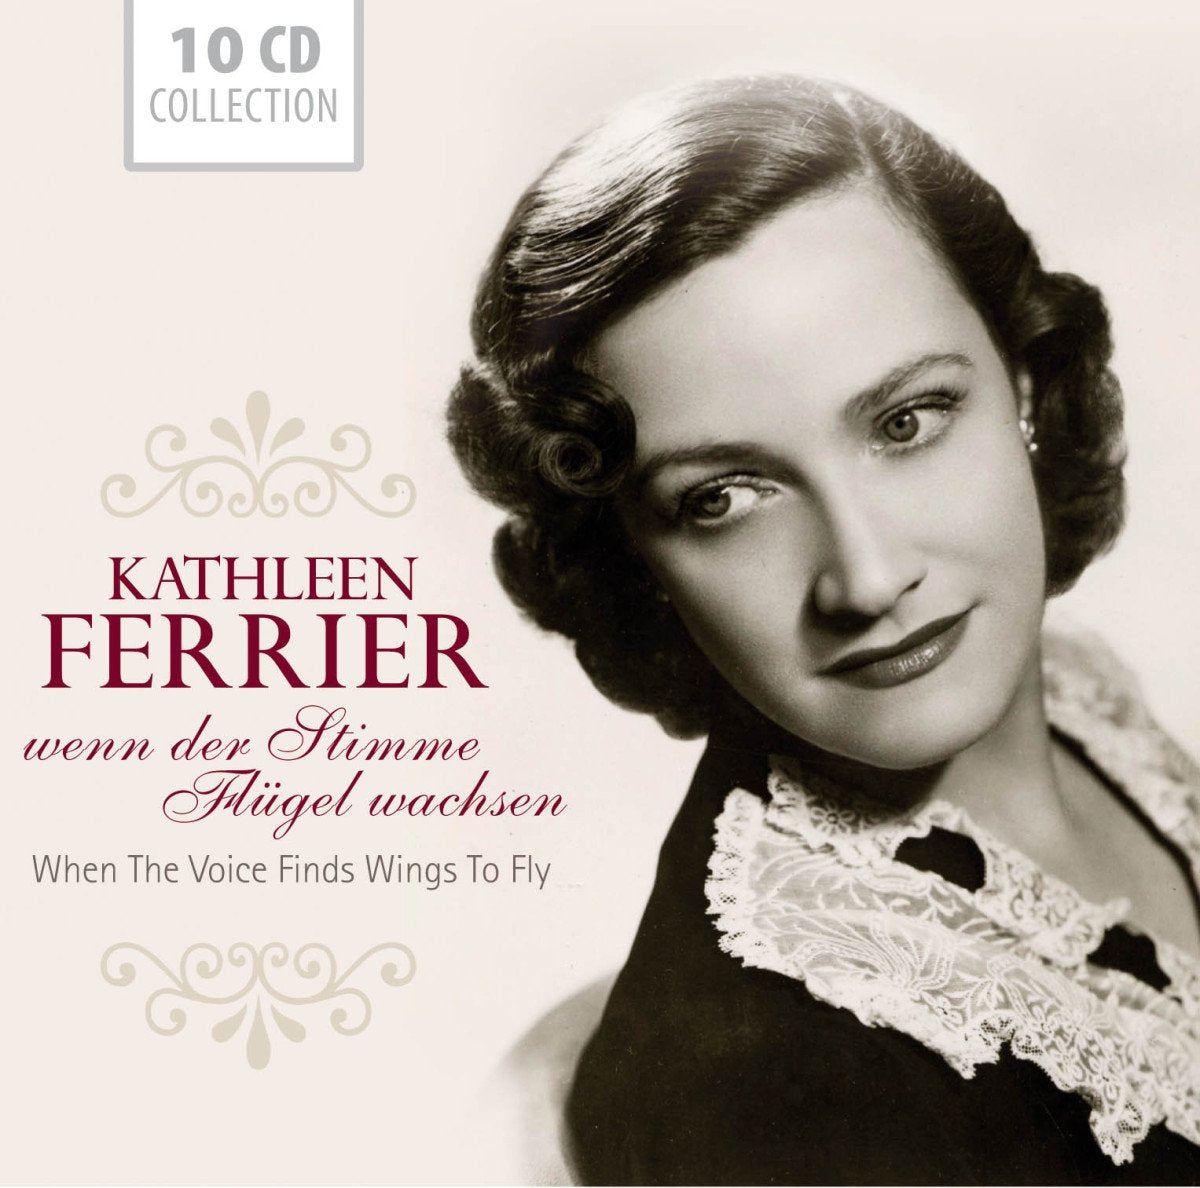 KATHLEEN FERRIER: When The Voice Finds Wings To Fly  (10 CD SET)